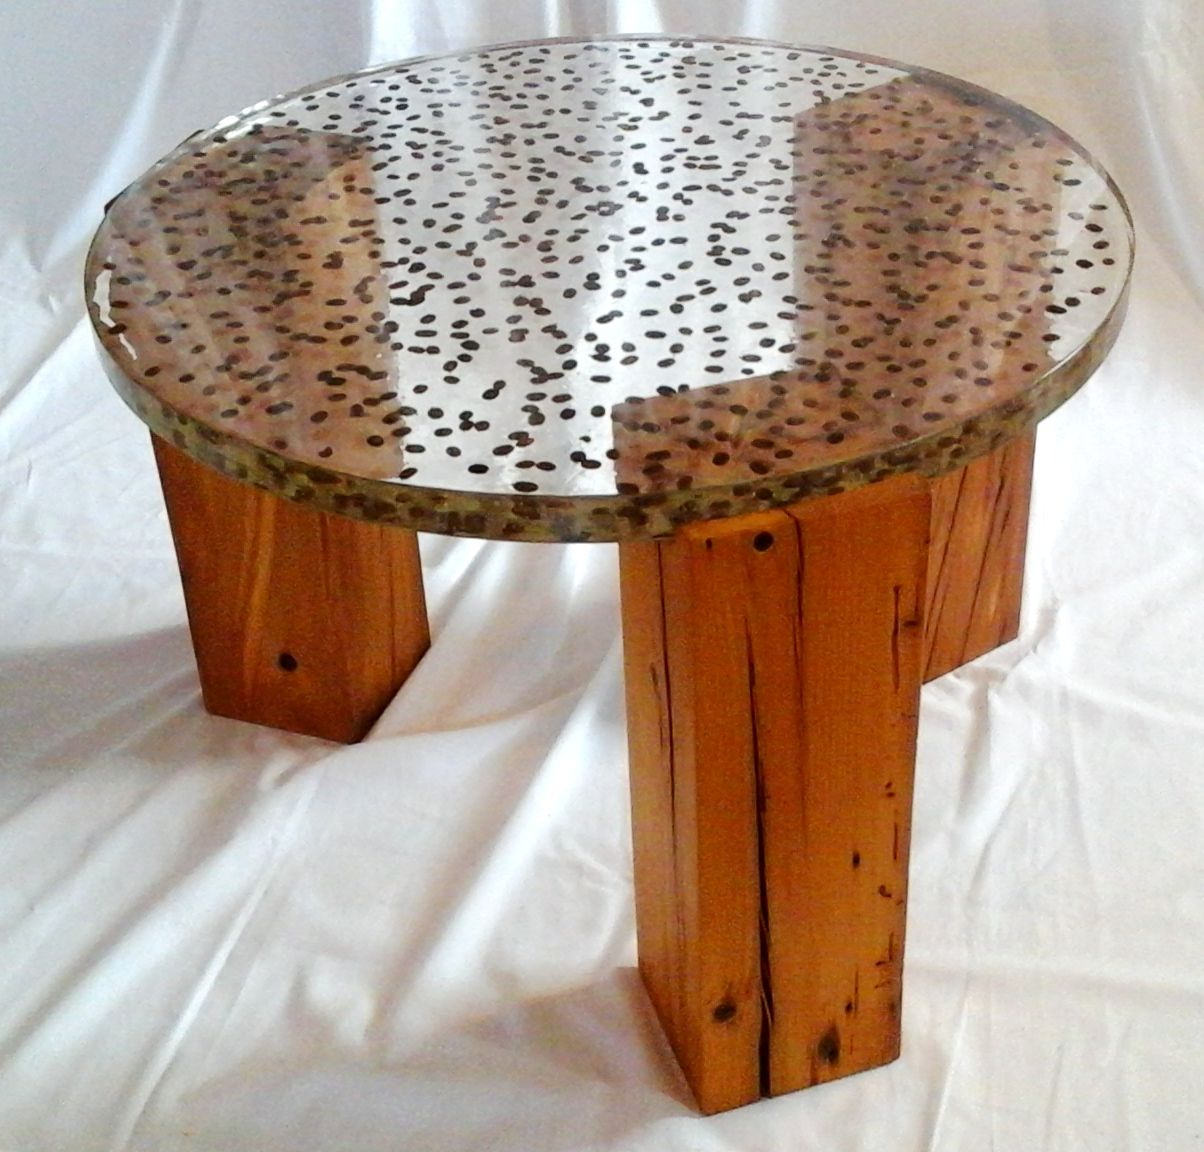 Cool For Coffee Lovers Resin Table Top With Embedded Coffee Inzonedesignstudio Interior Chair Design Inzonedesignstudiocom